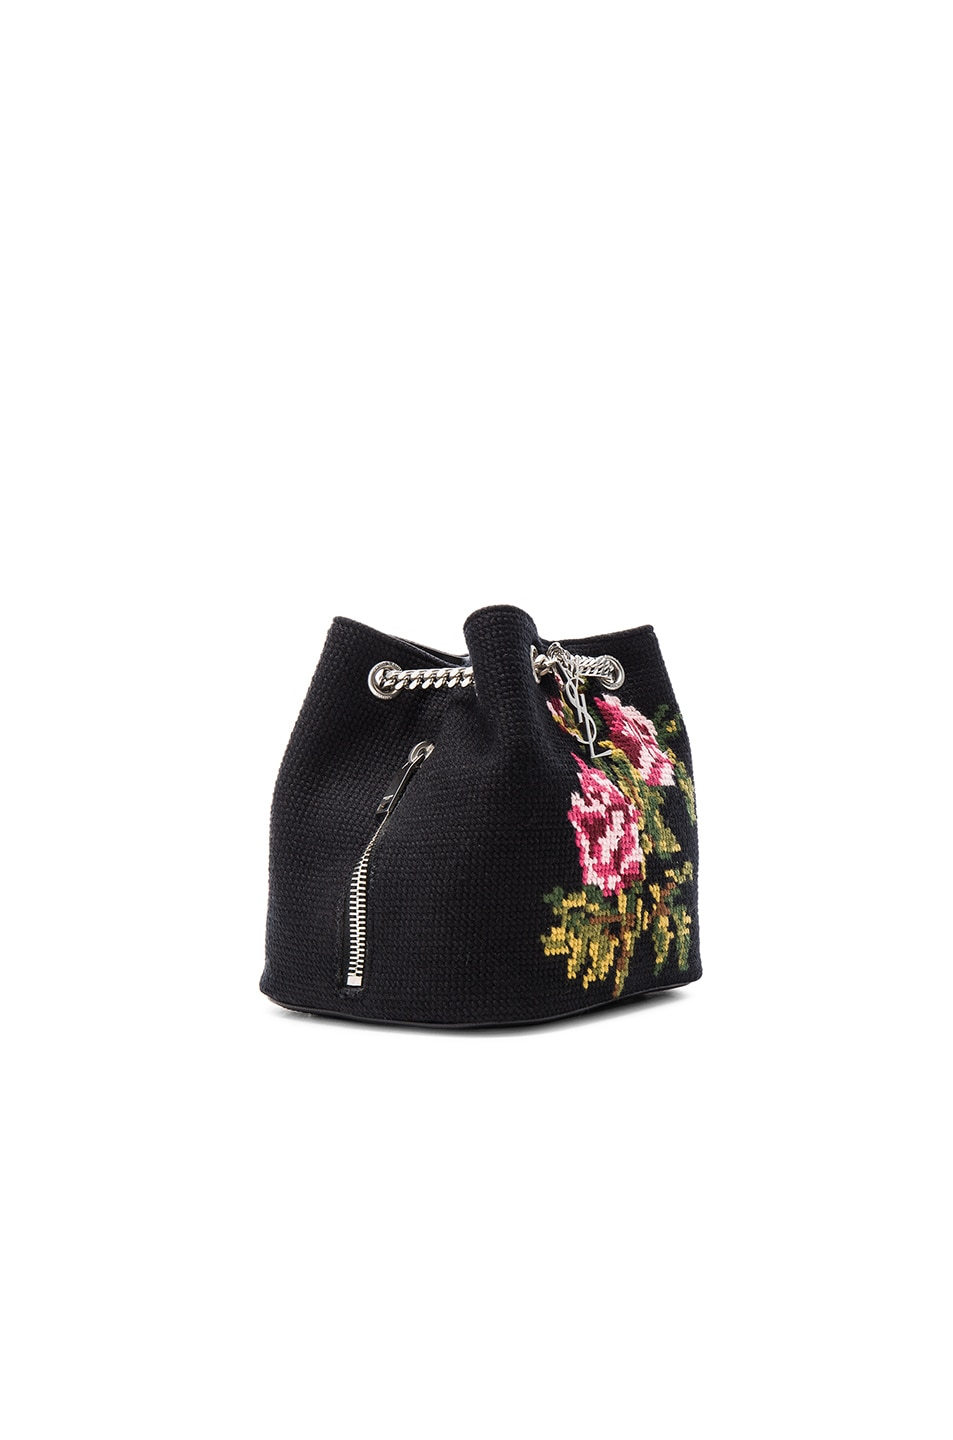 Image 4 of Saint Laurent Baby Floral Embroidery Emmanuelle Bucket Bag in  Black   Multi 5a6877ade35d6